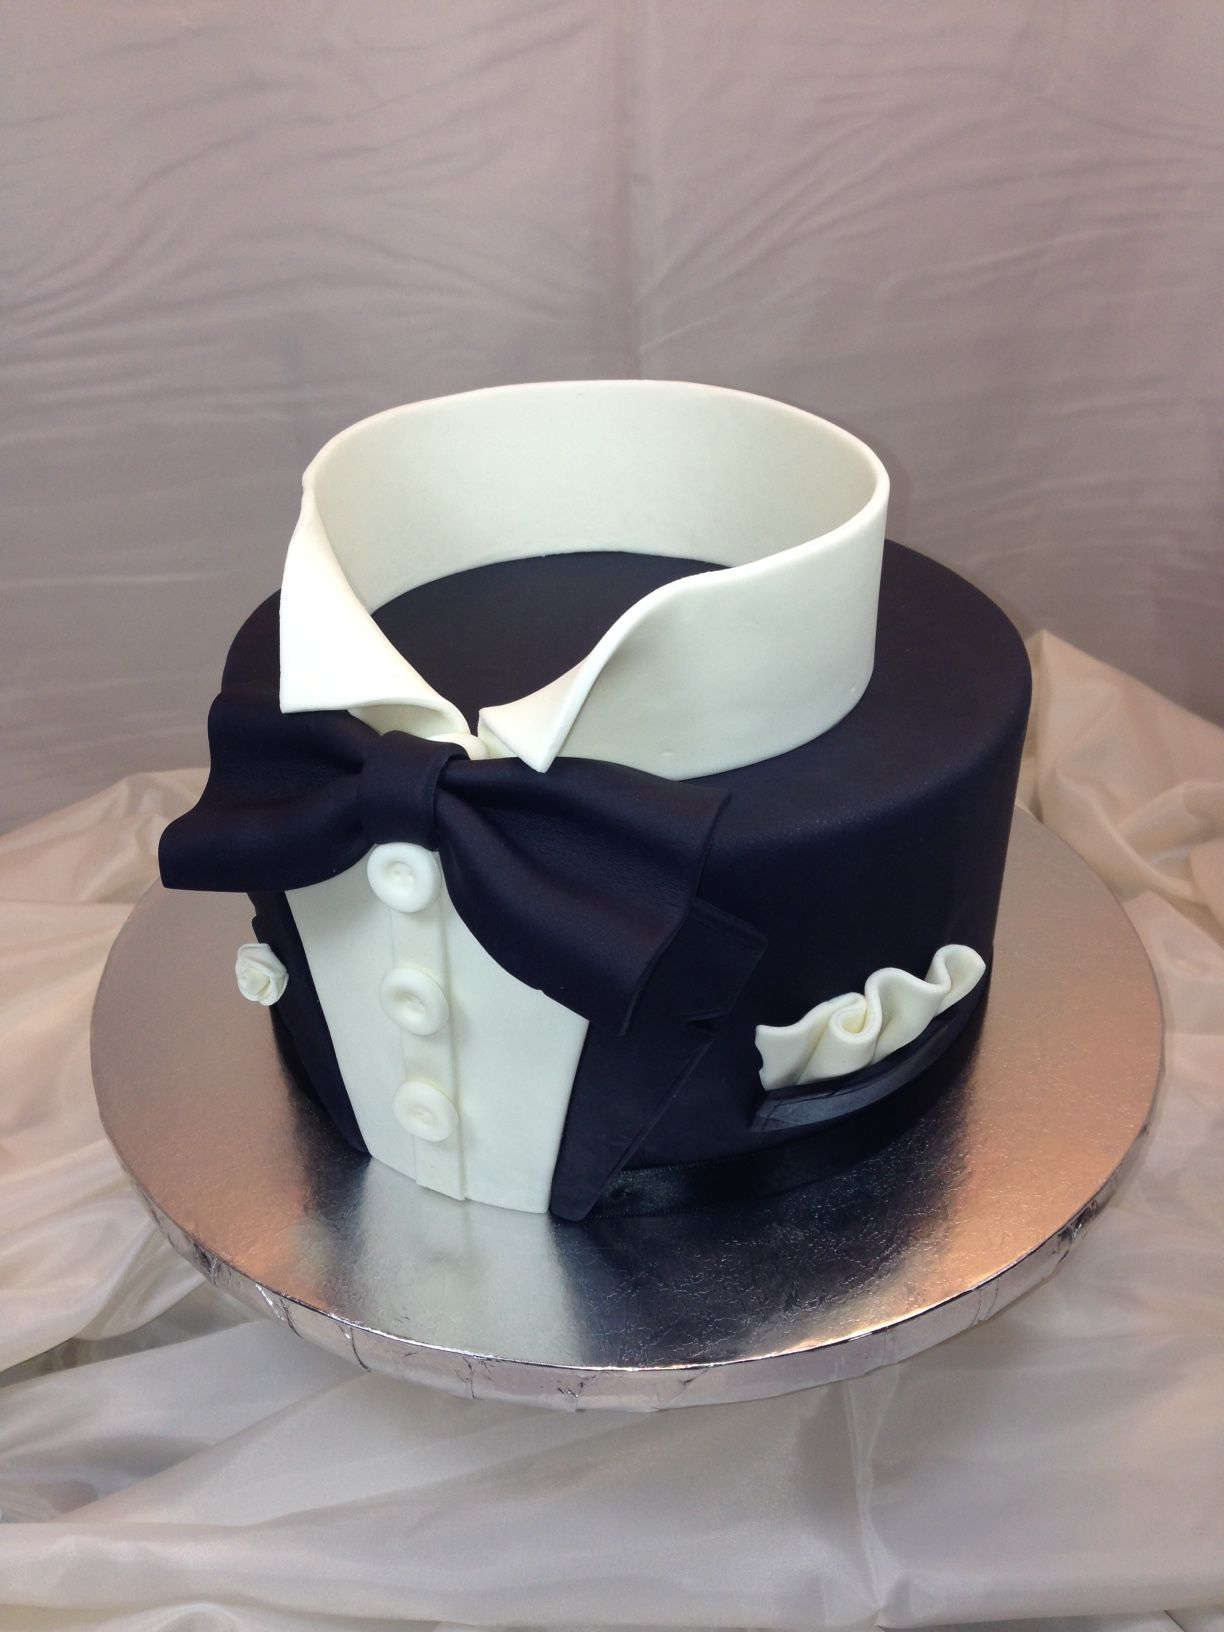 tuxedo grooms cake groom 39 s cakes pinterest torte f r. Black Bedroom Furniture Sets. Home Design Ideas